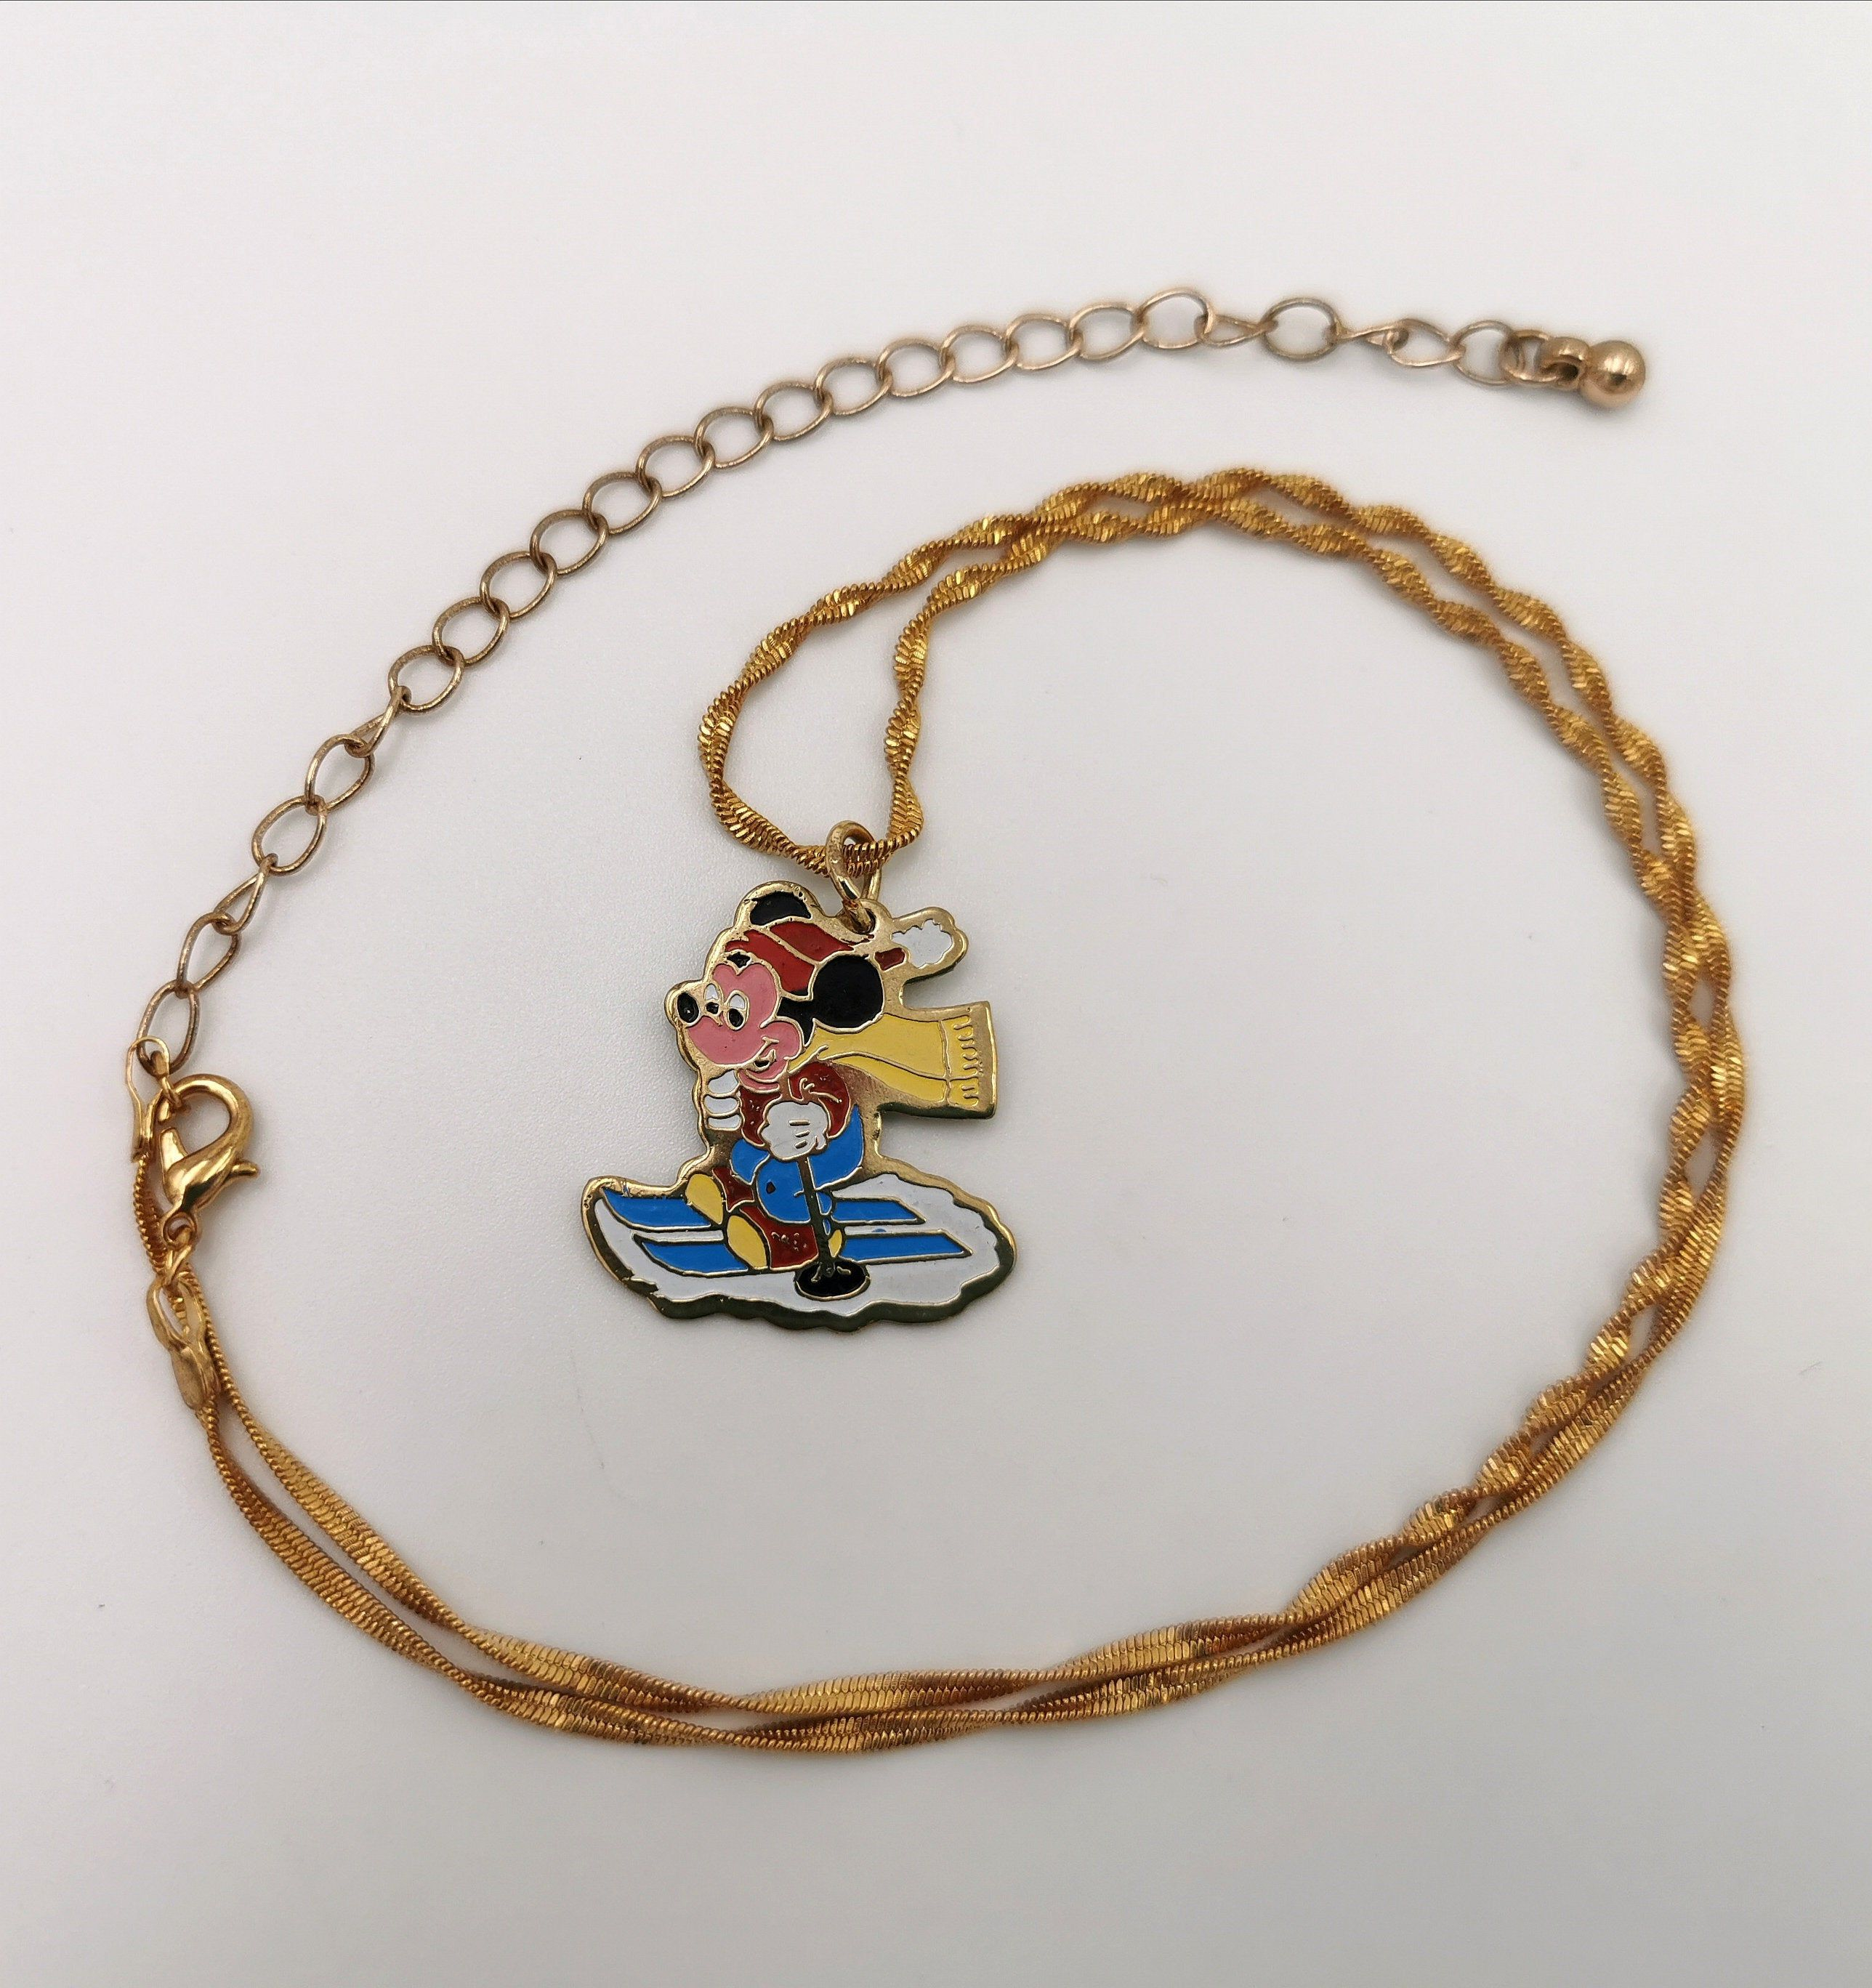 Parachutist Charm With Lobster Claw Clasp Charms for Bracelets and Necklaces